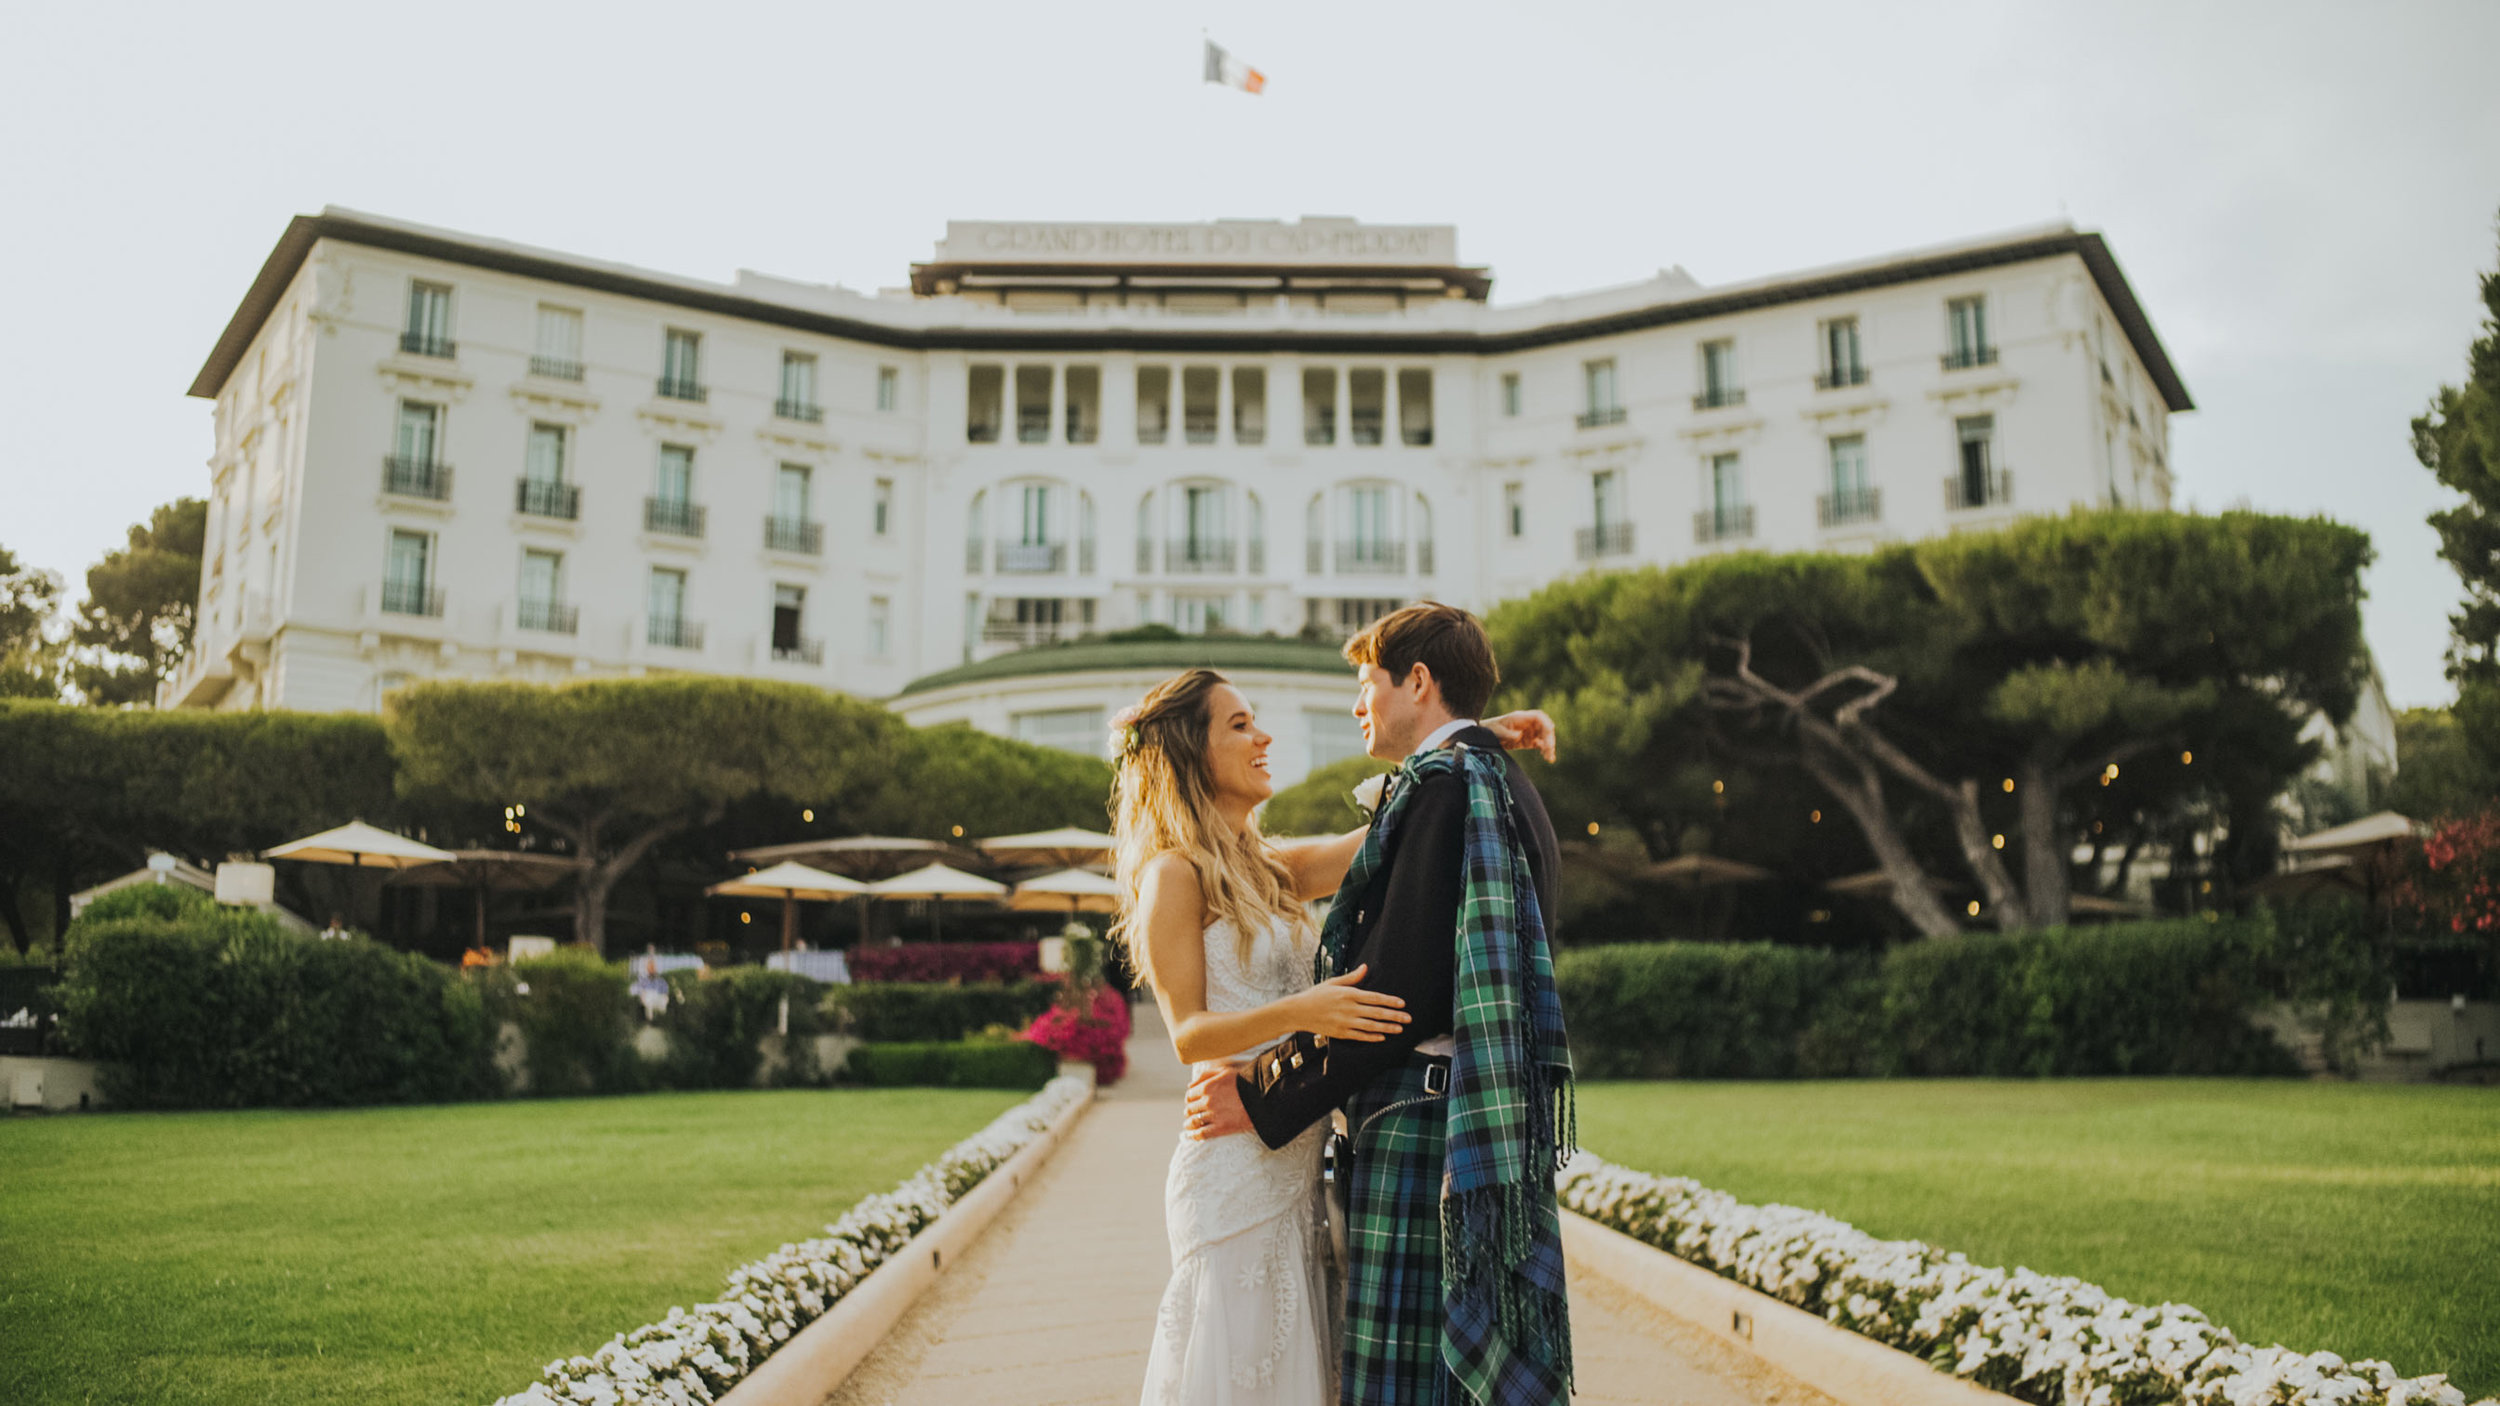 Grand Hotel du cap ferrat four season luxury wedding.jpg